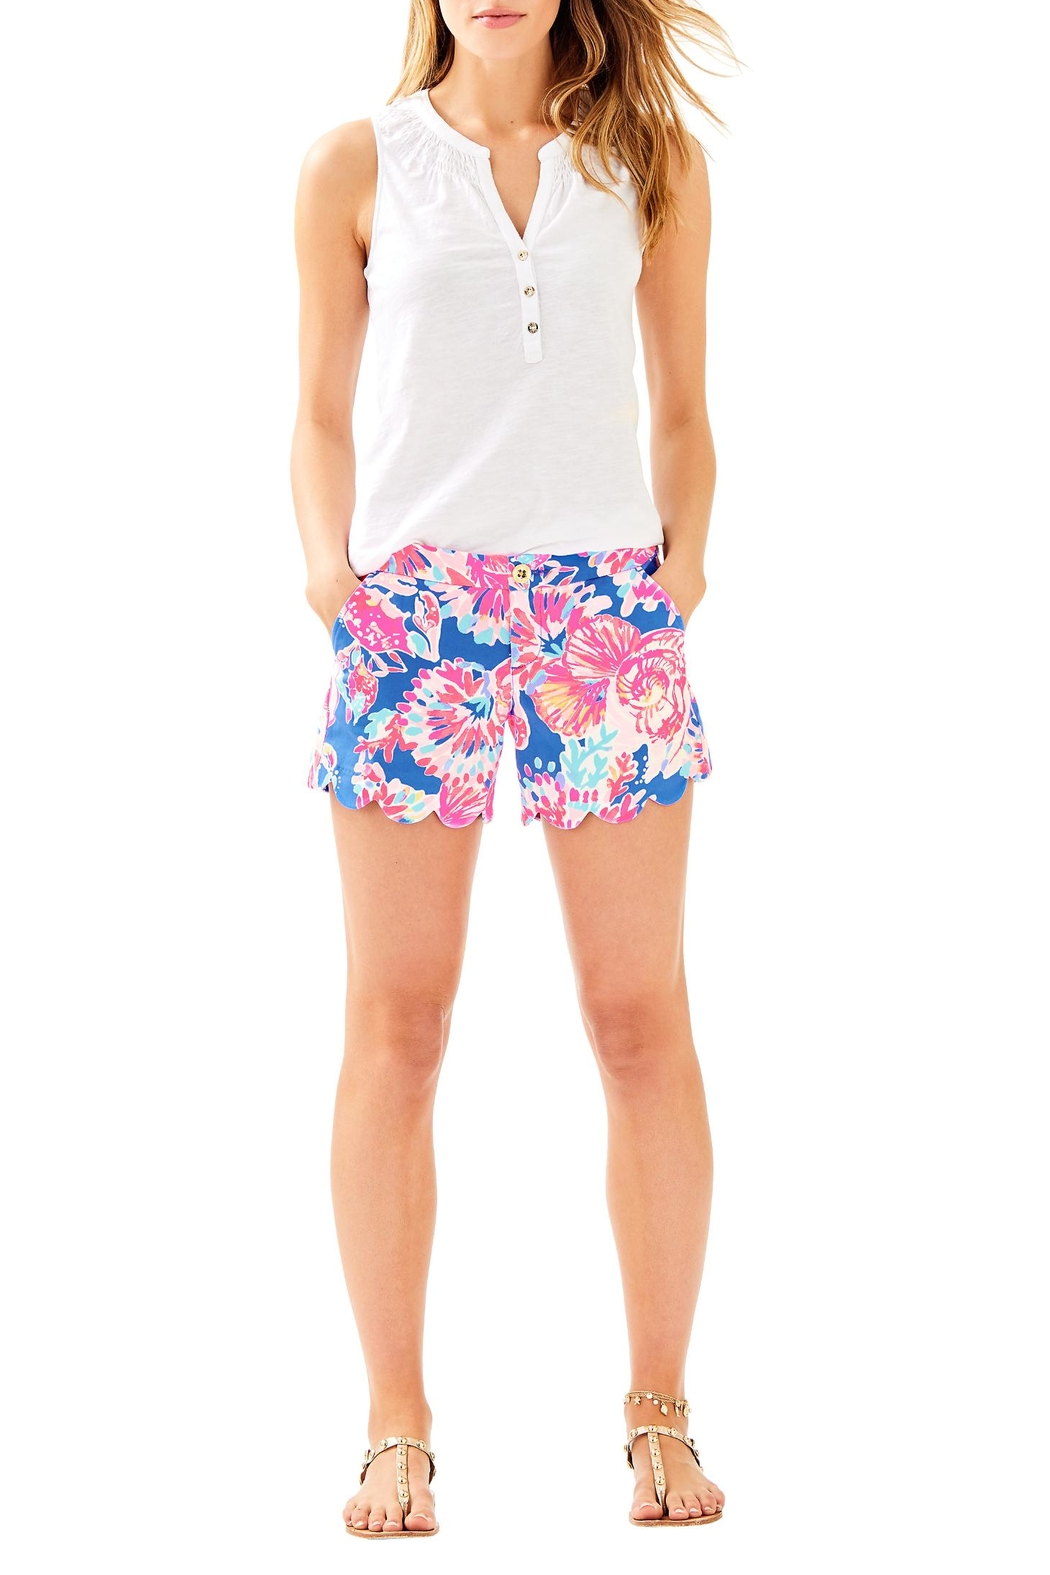 Lilly Pulitzer Buttercup Short - Back Cropped Image